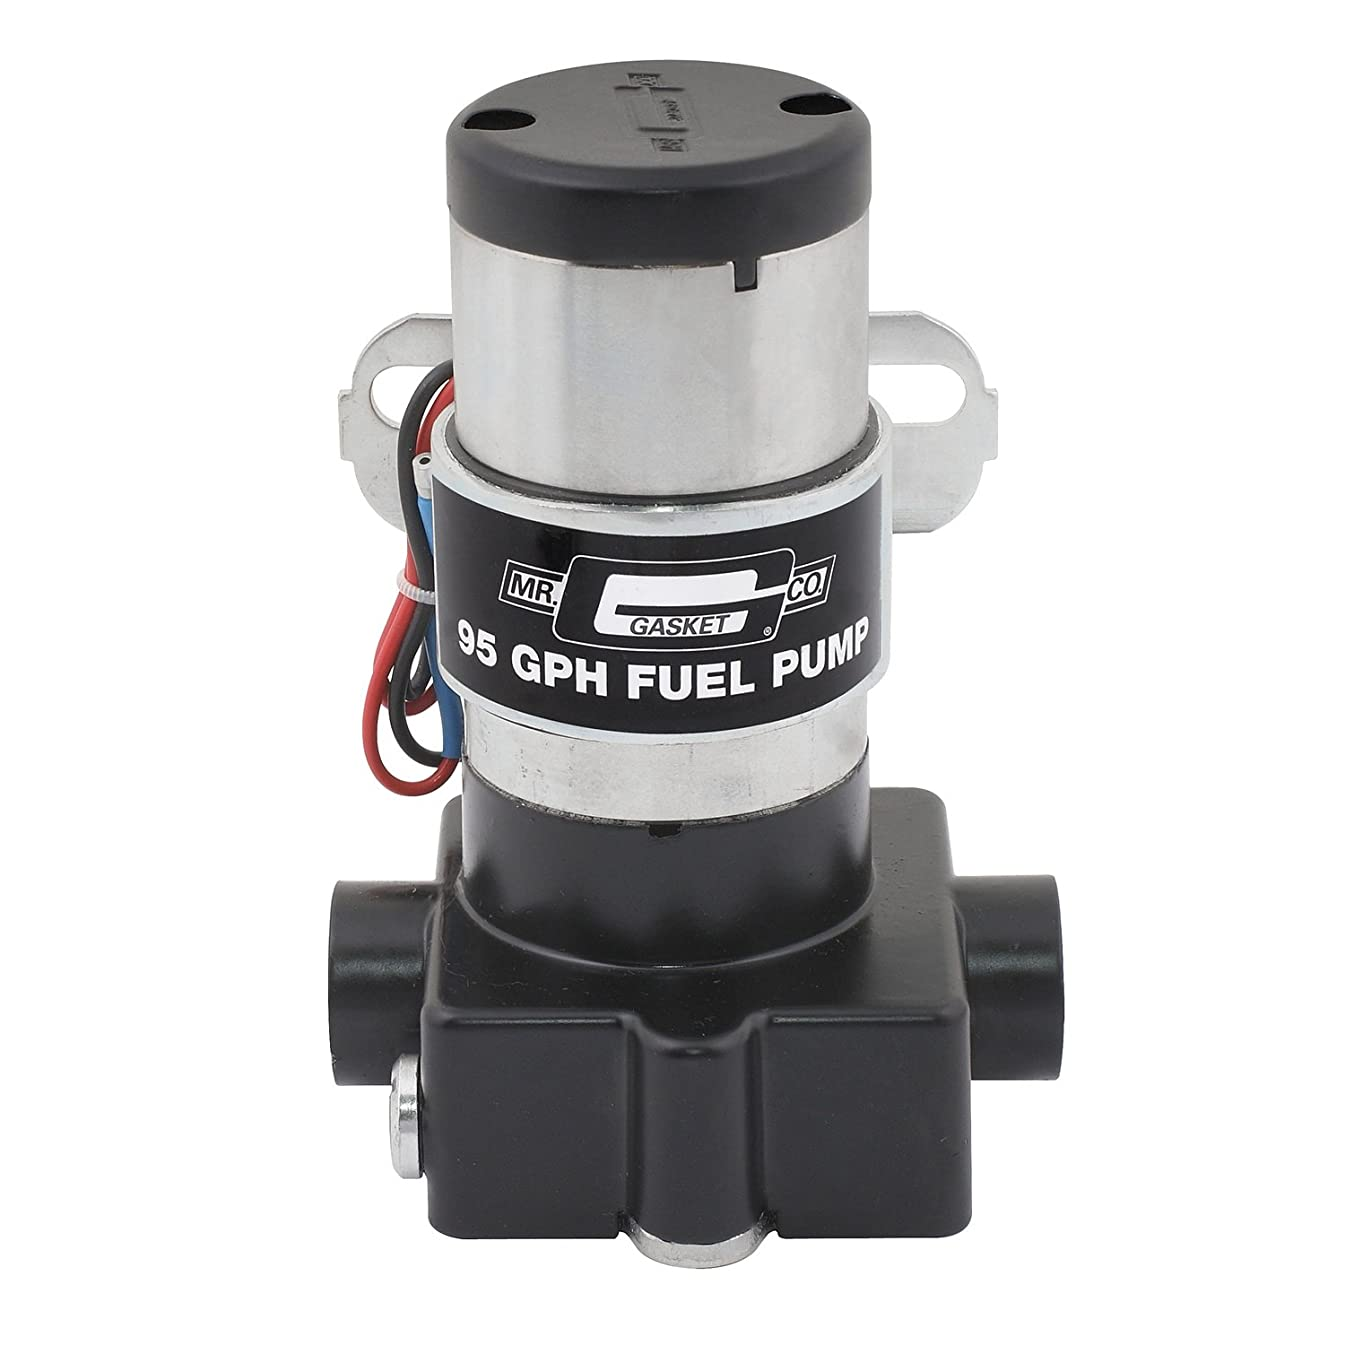 Mr Gasket 95P 95 GPH Flow High Performance Electric Fuel Pump